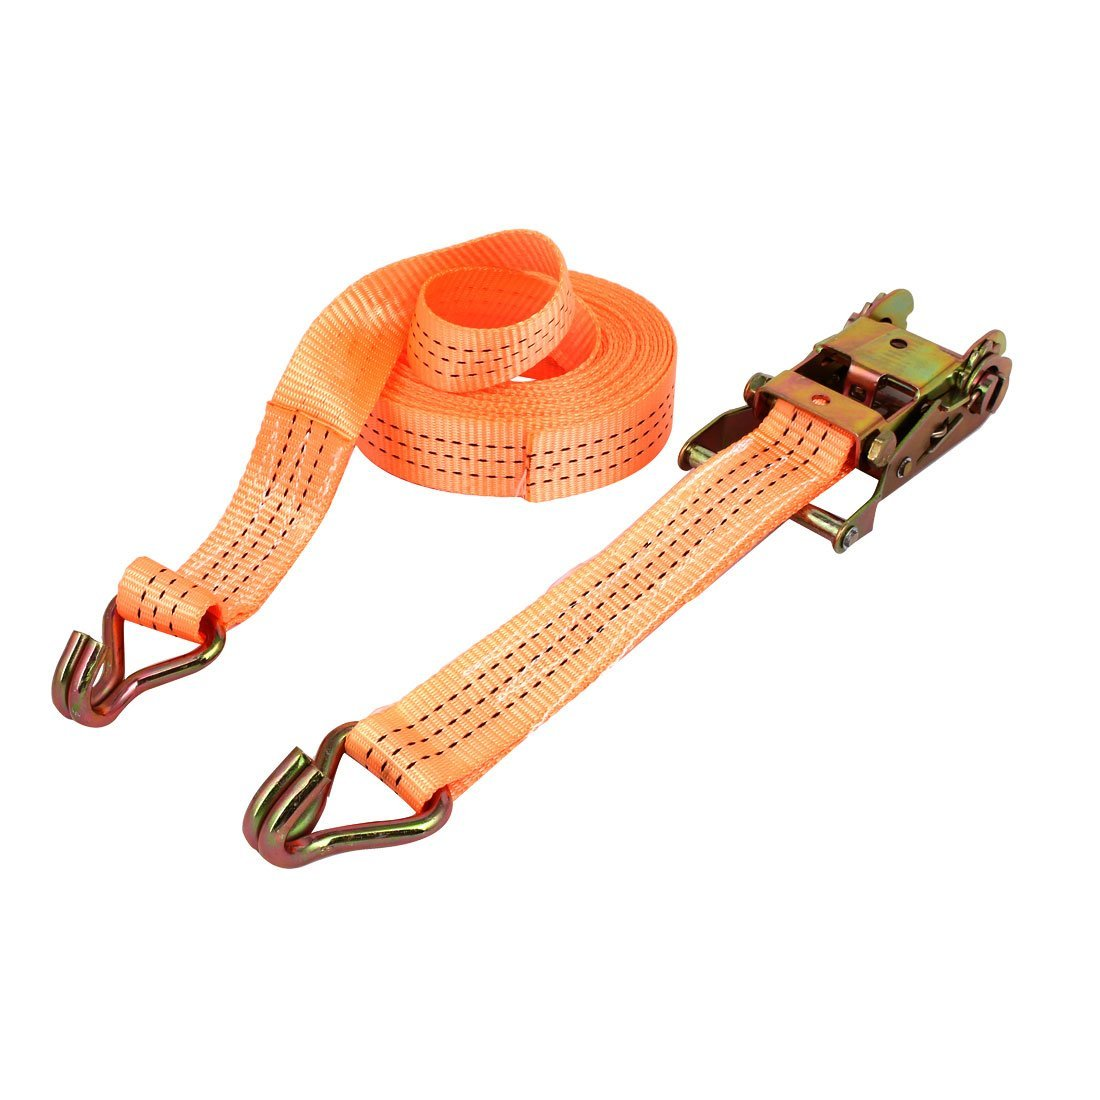 Yellow uxcell 10M x 25mm Lashing Strap Cargo Tie Down Straps with Cam Lock Buckle 250Kg Work Load